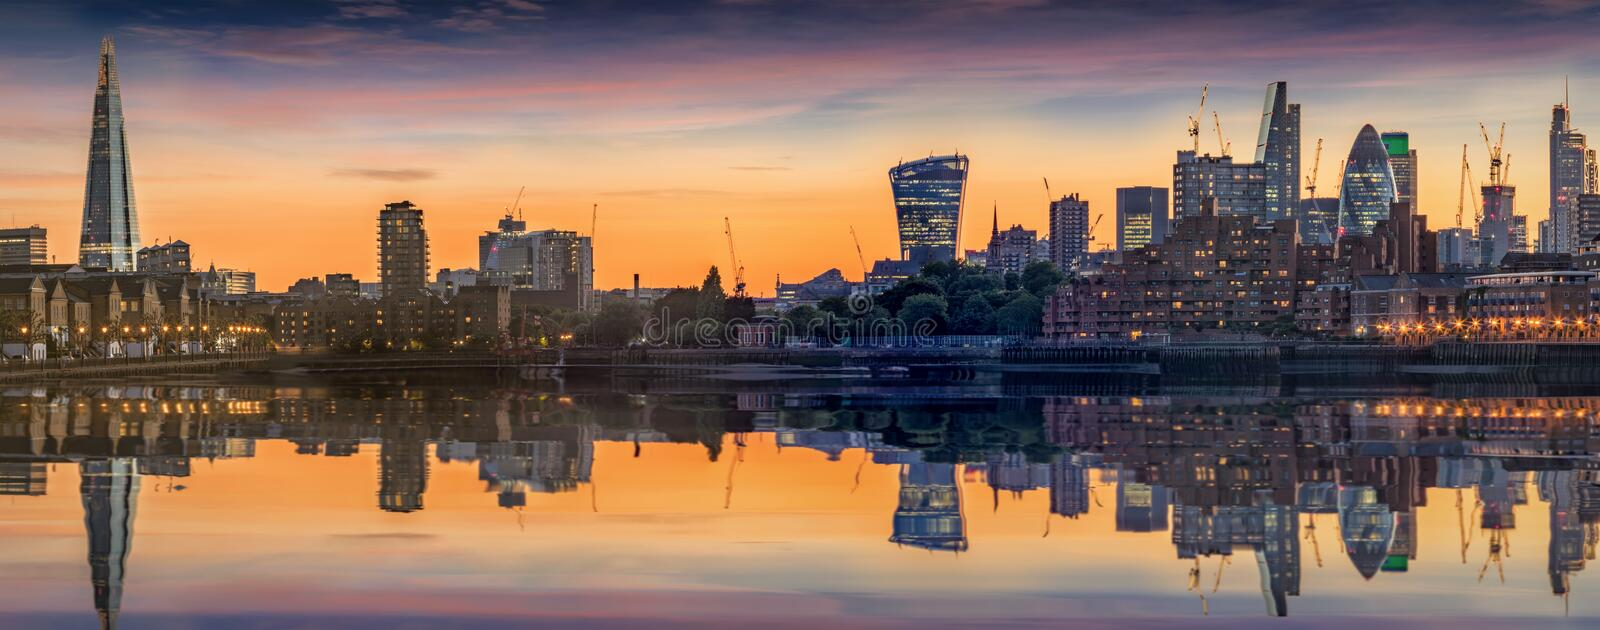 The new skyline of London from Canary Wharf stock image